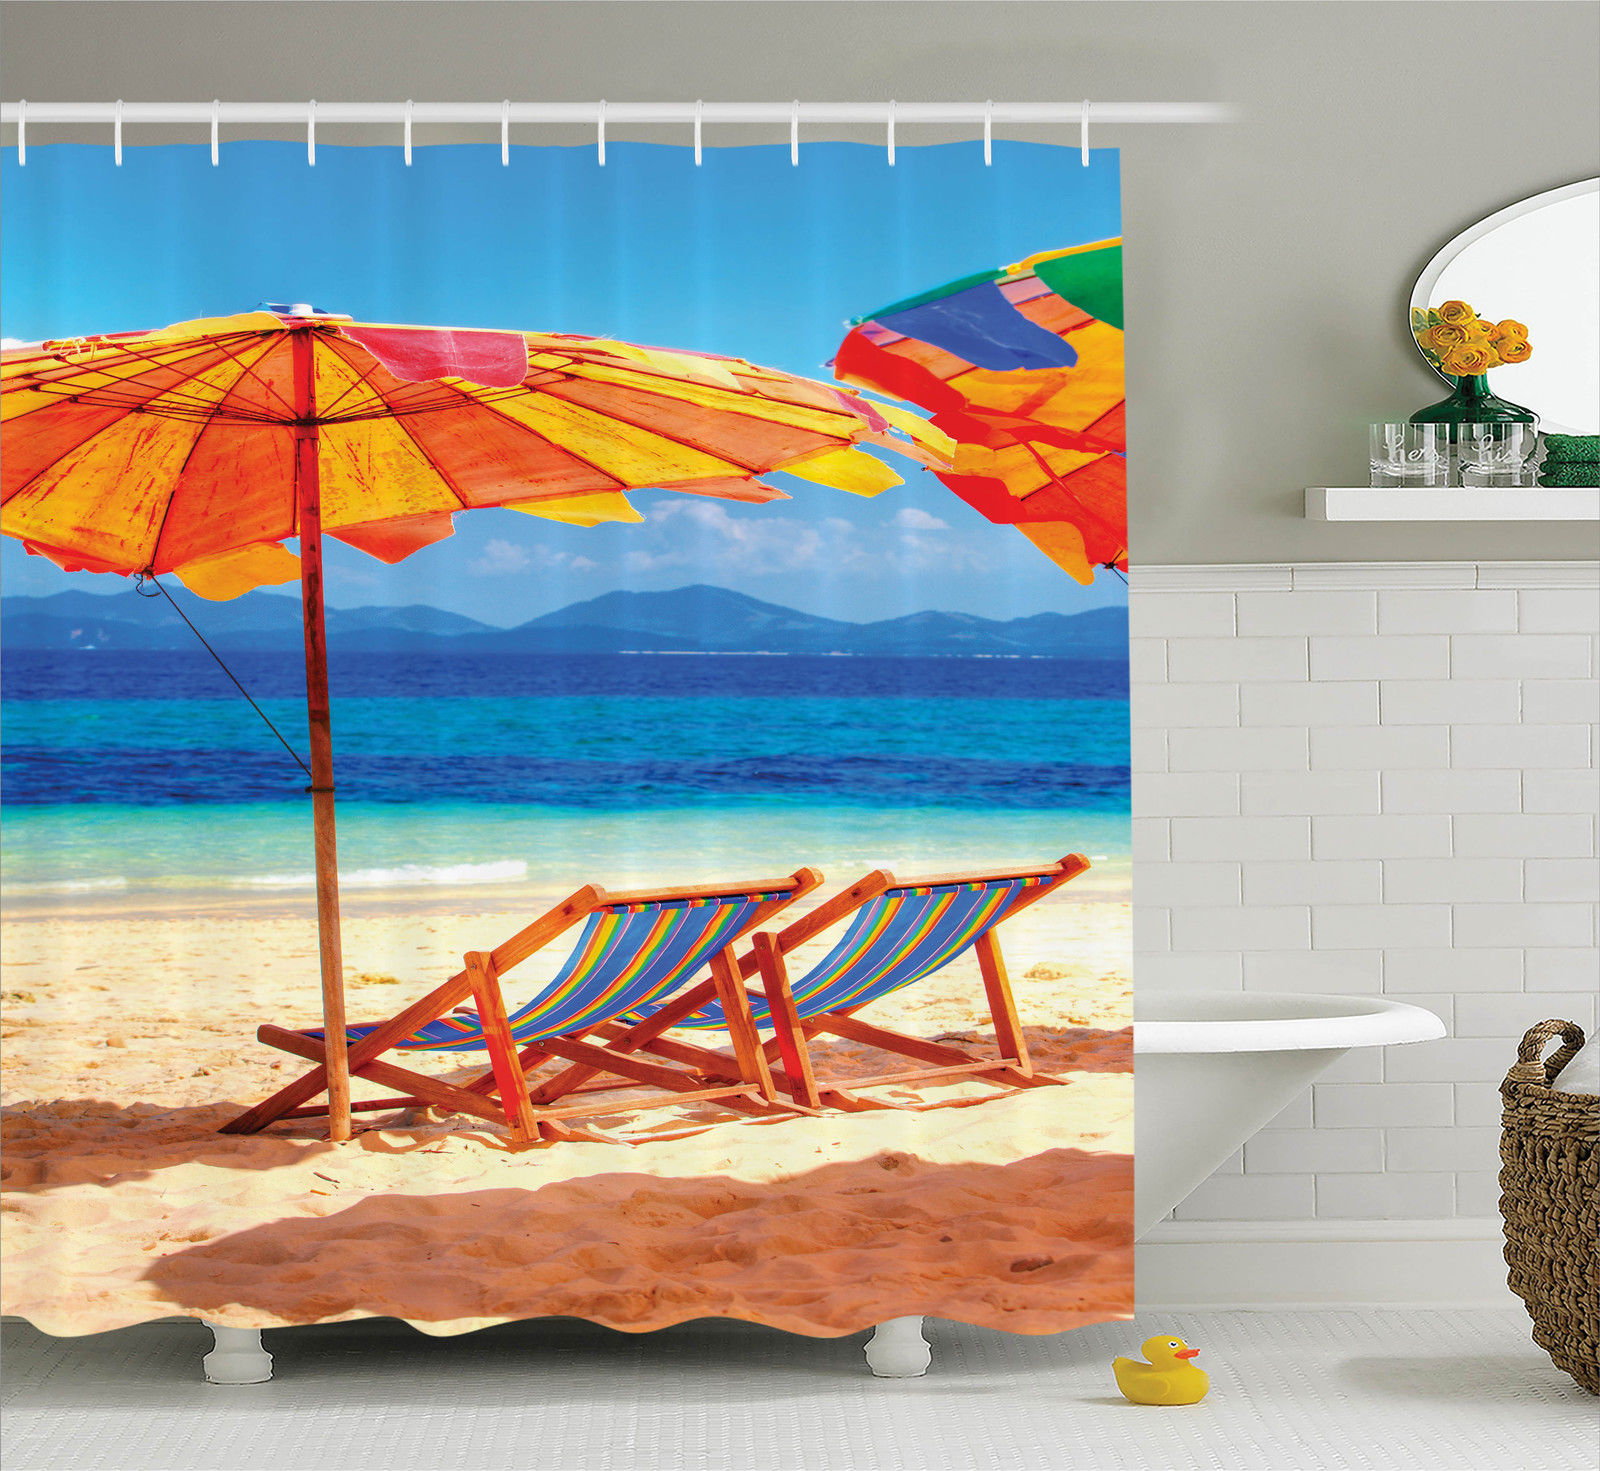 Seaside Decor Shower Curtain Set, Deck Chairs Overlooking Tropical Sea Of Thailand Beach Exotic Holiday Picture, Bathroom Accessories, 69W X 70L Inches, By Ambesonne